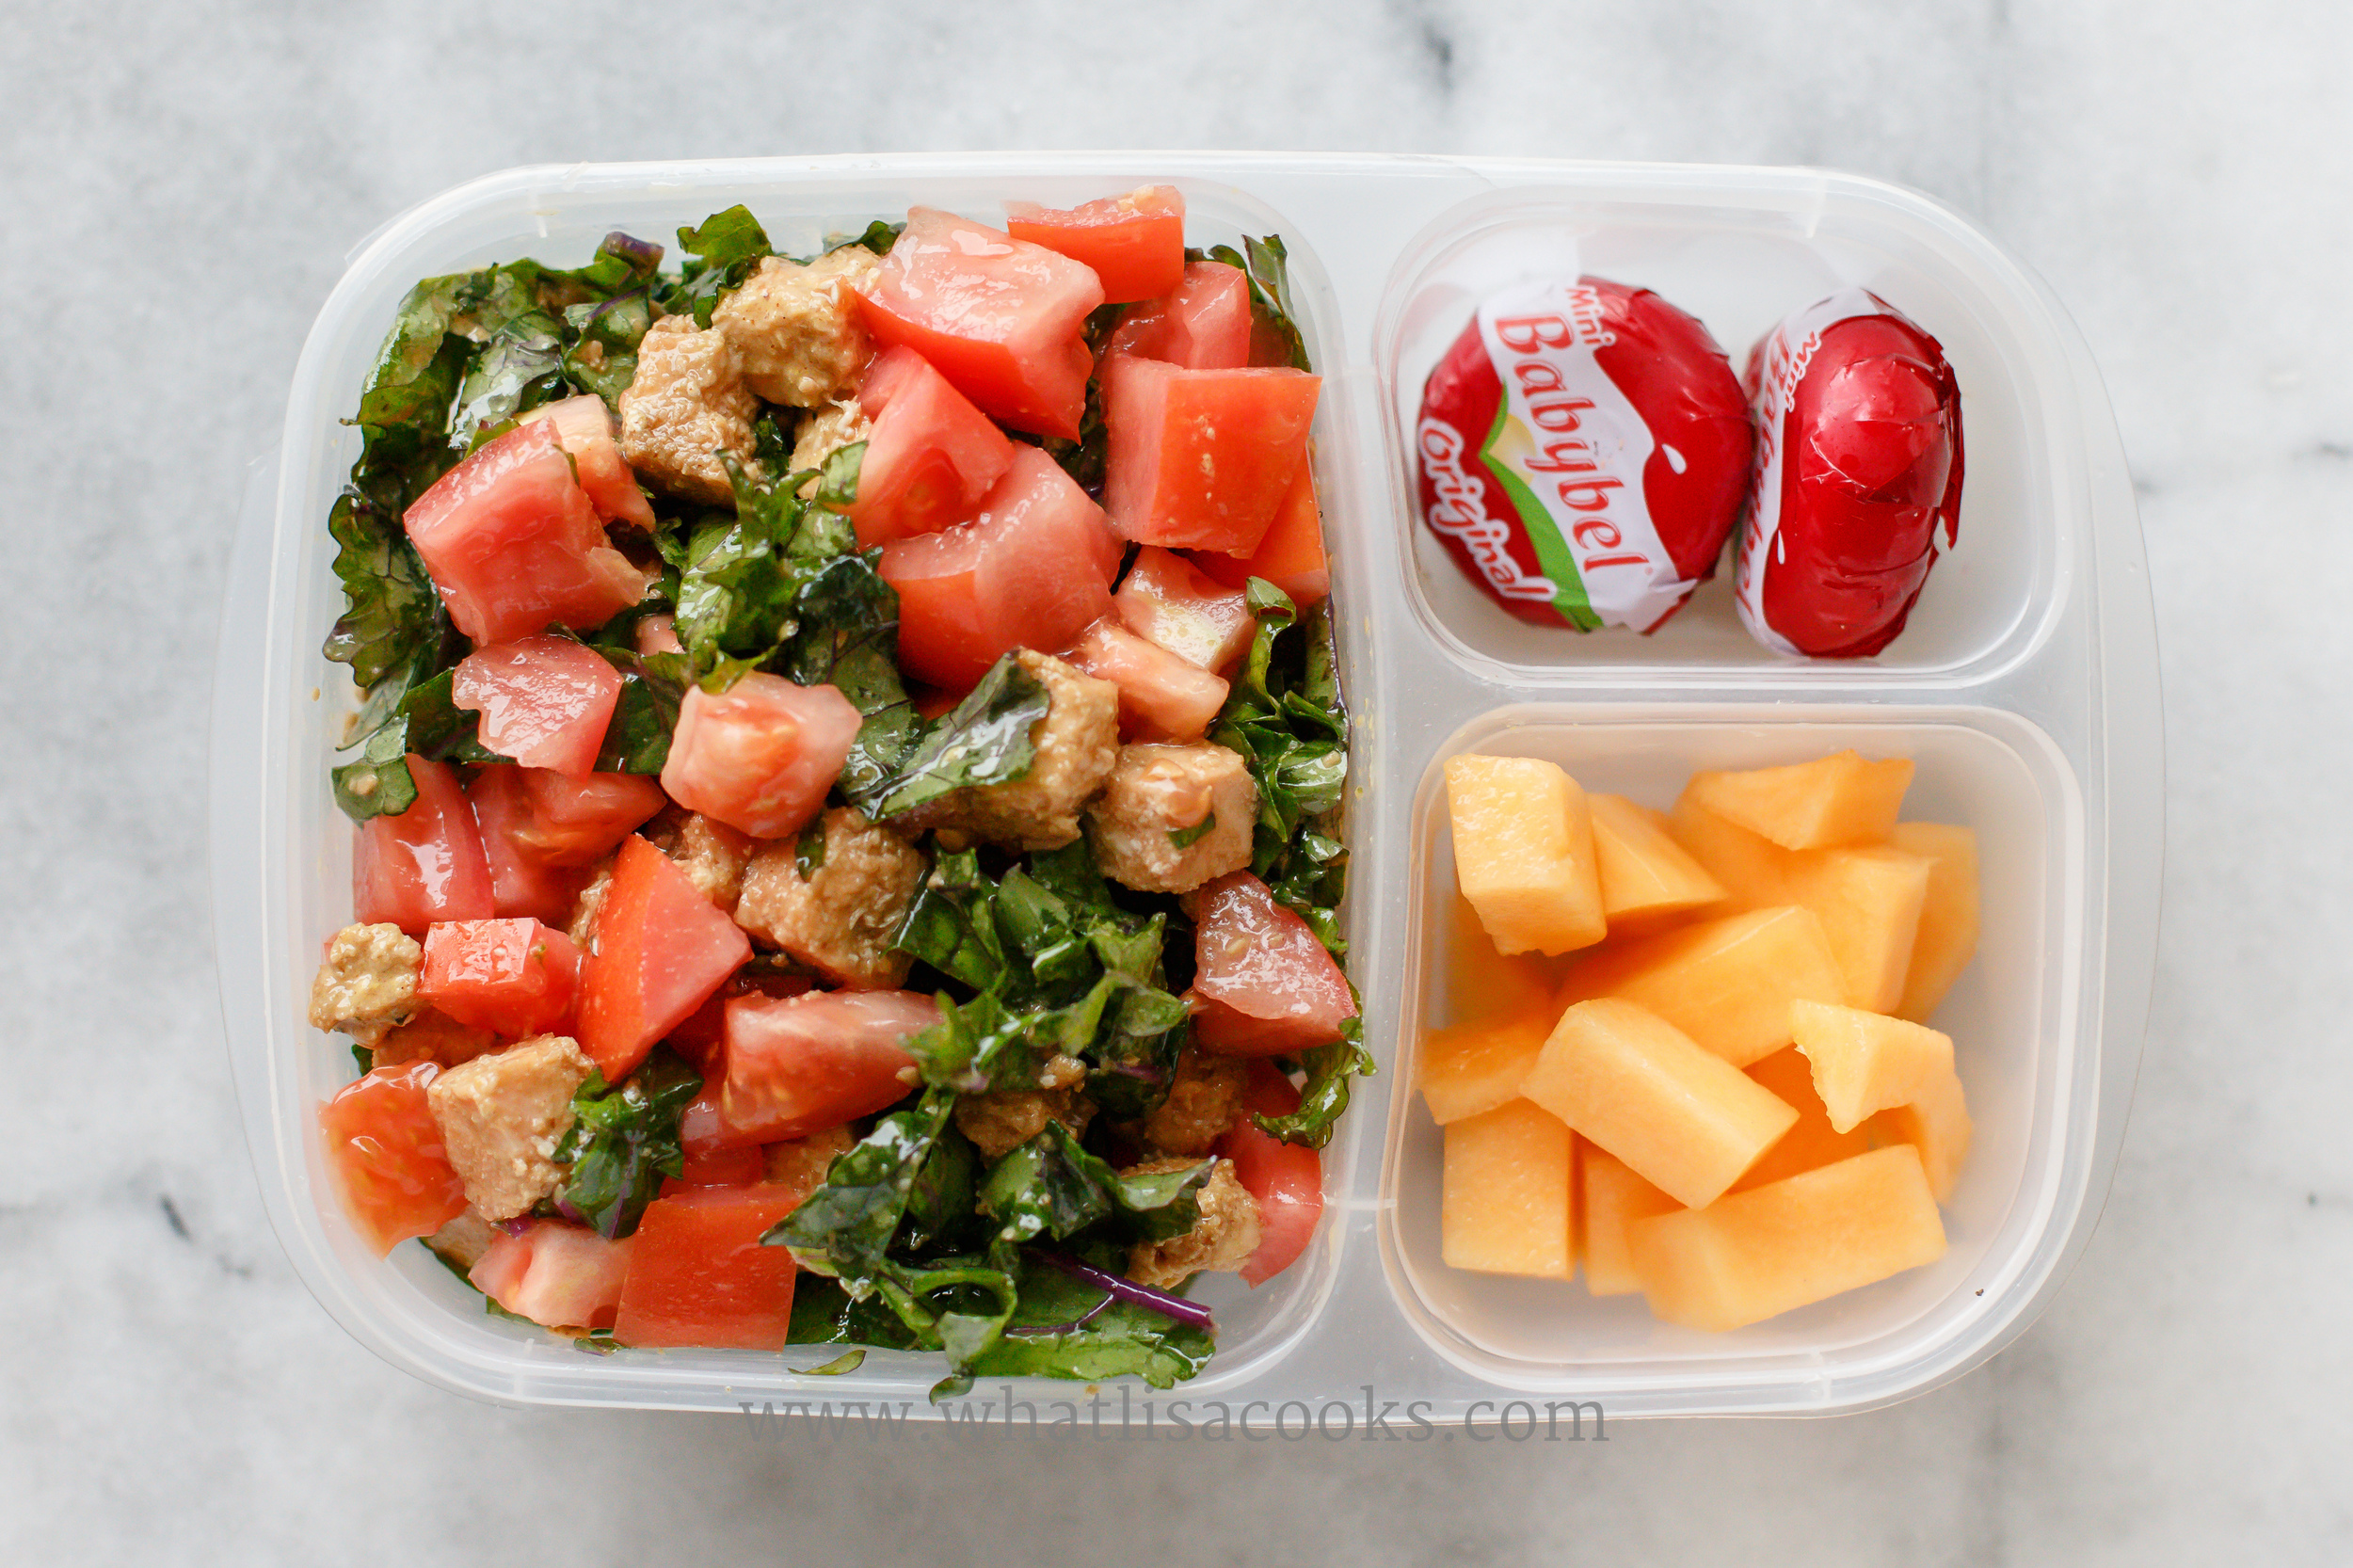 A quick and easy kale salad - just quickly tossed with sesame oil and Bragg's aminos. With diced tomatoes and bites of a leftover salmon burger.  Melon and cheese on the side.